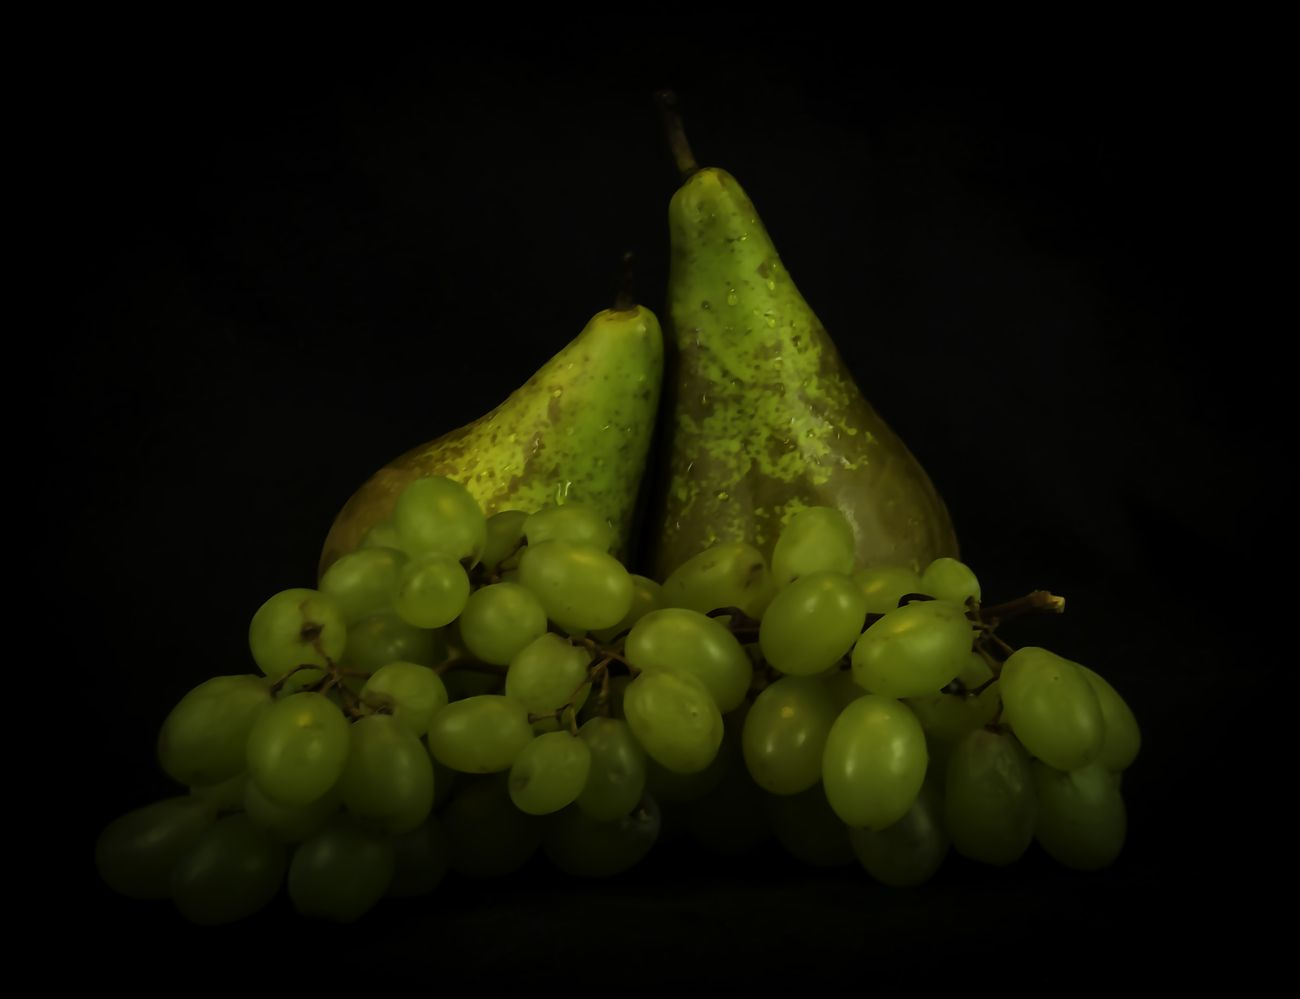 Still life pears and grapes against black